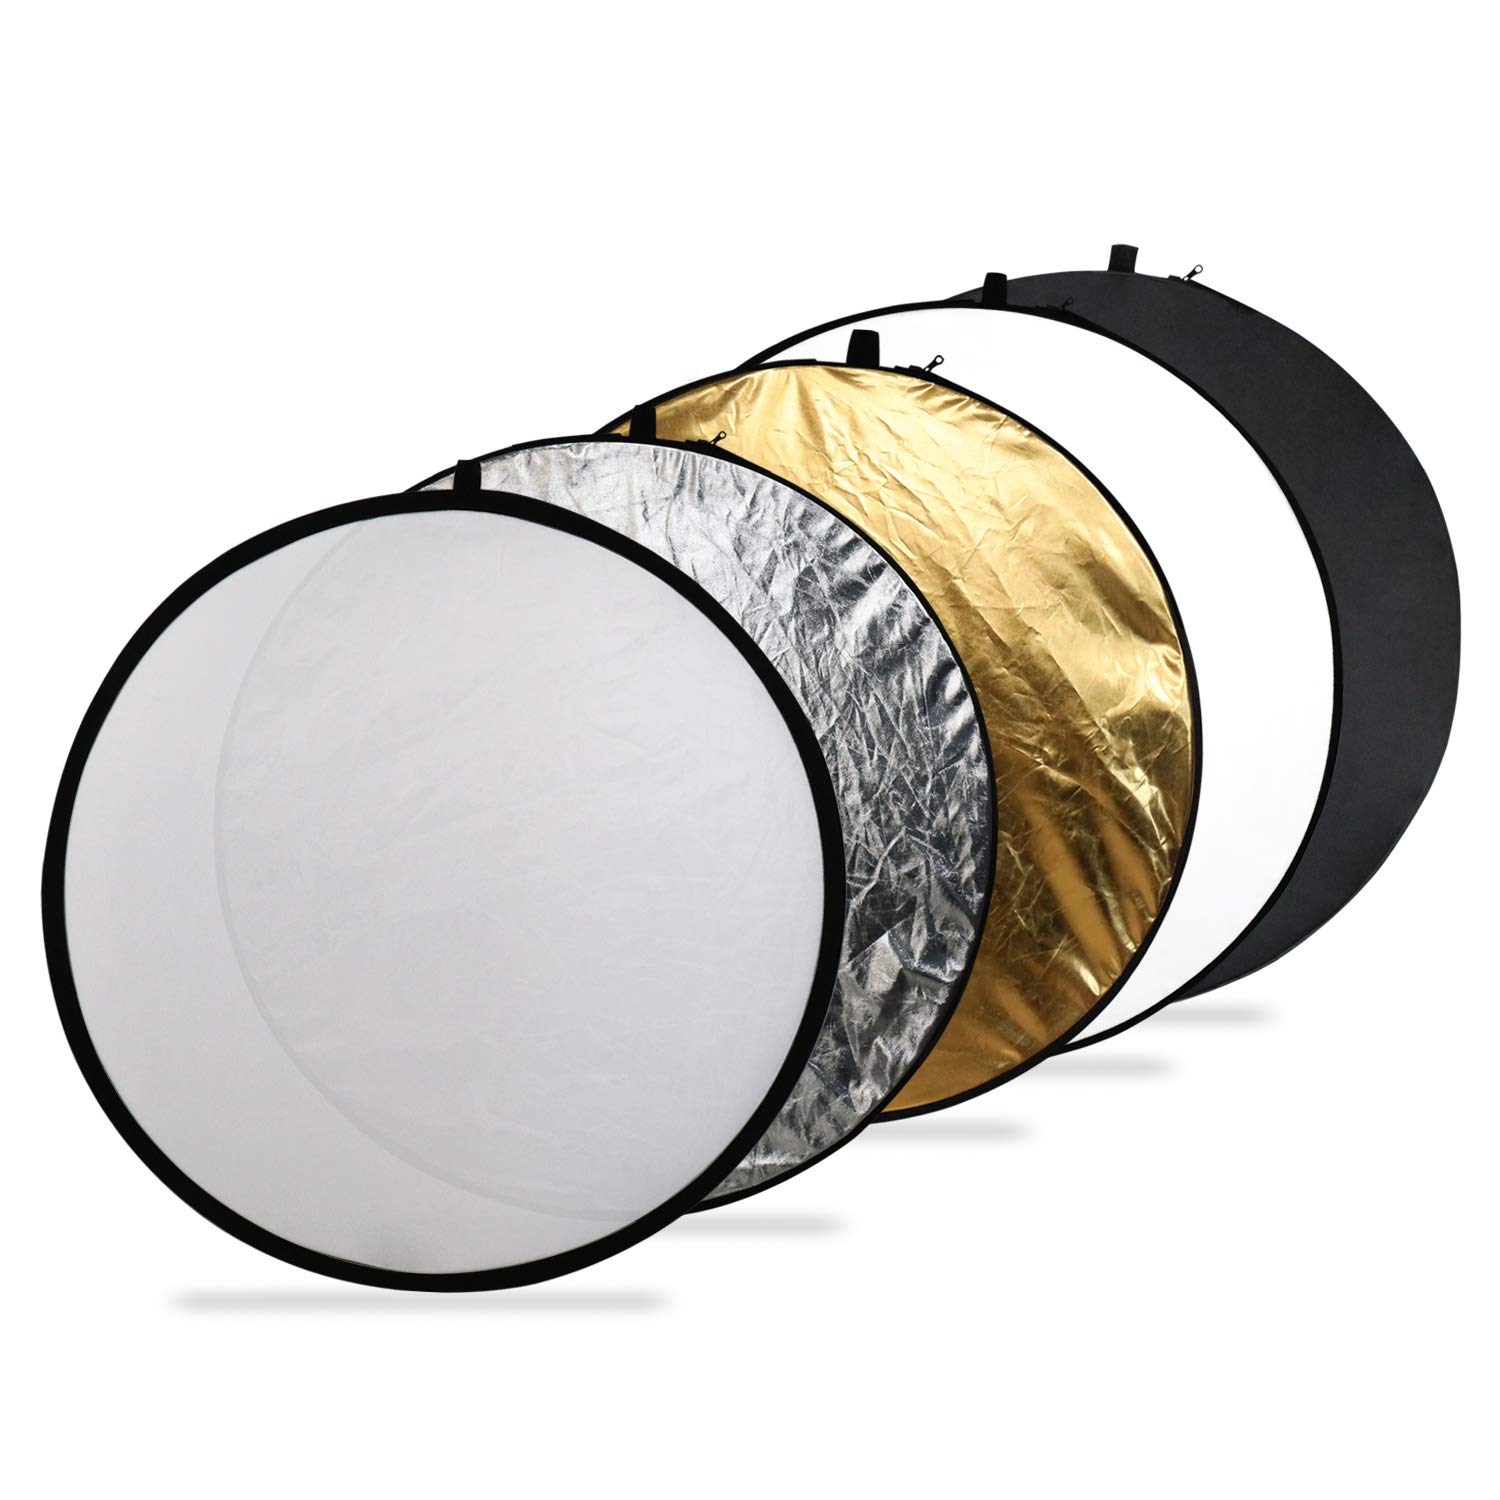 Issuntex 43 Inch(110cm) Photography Reflector Photo Video Studio Multi Collapsible Disc 5-in-1 Lighting Reflector by ISSUNTEX